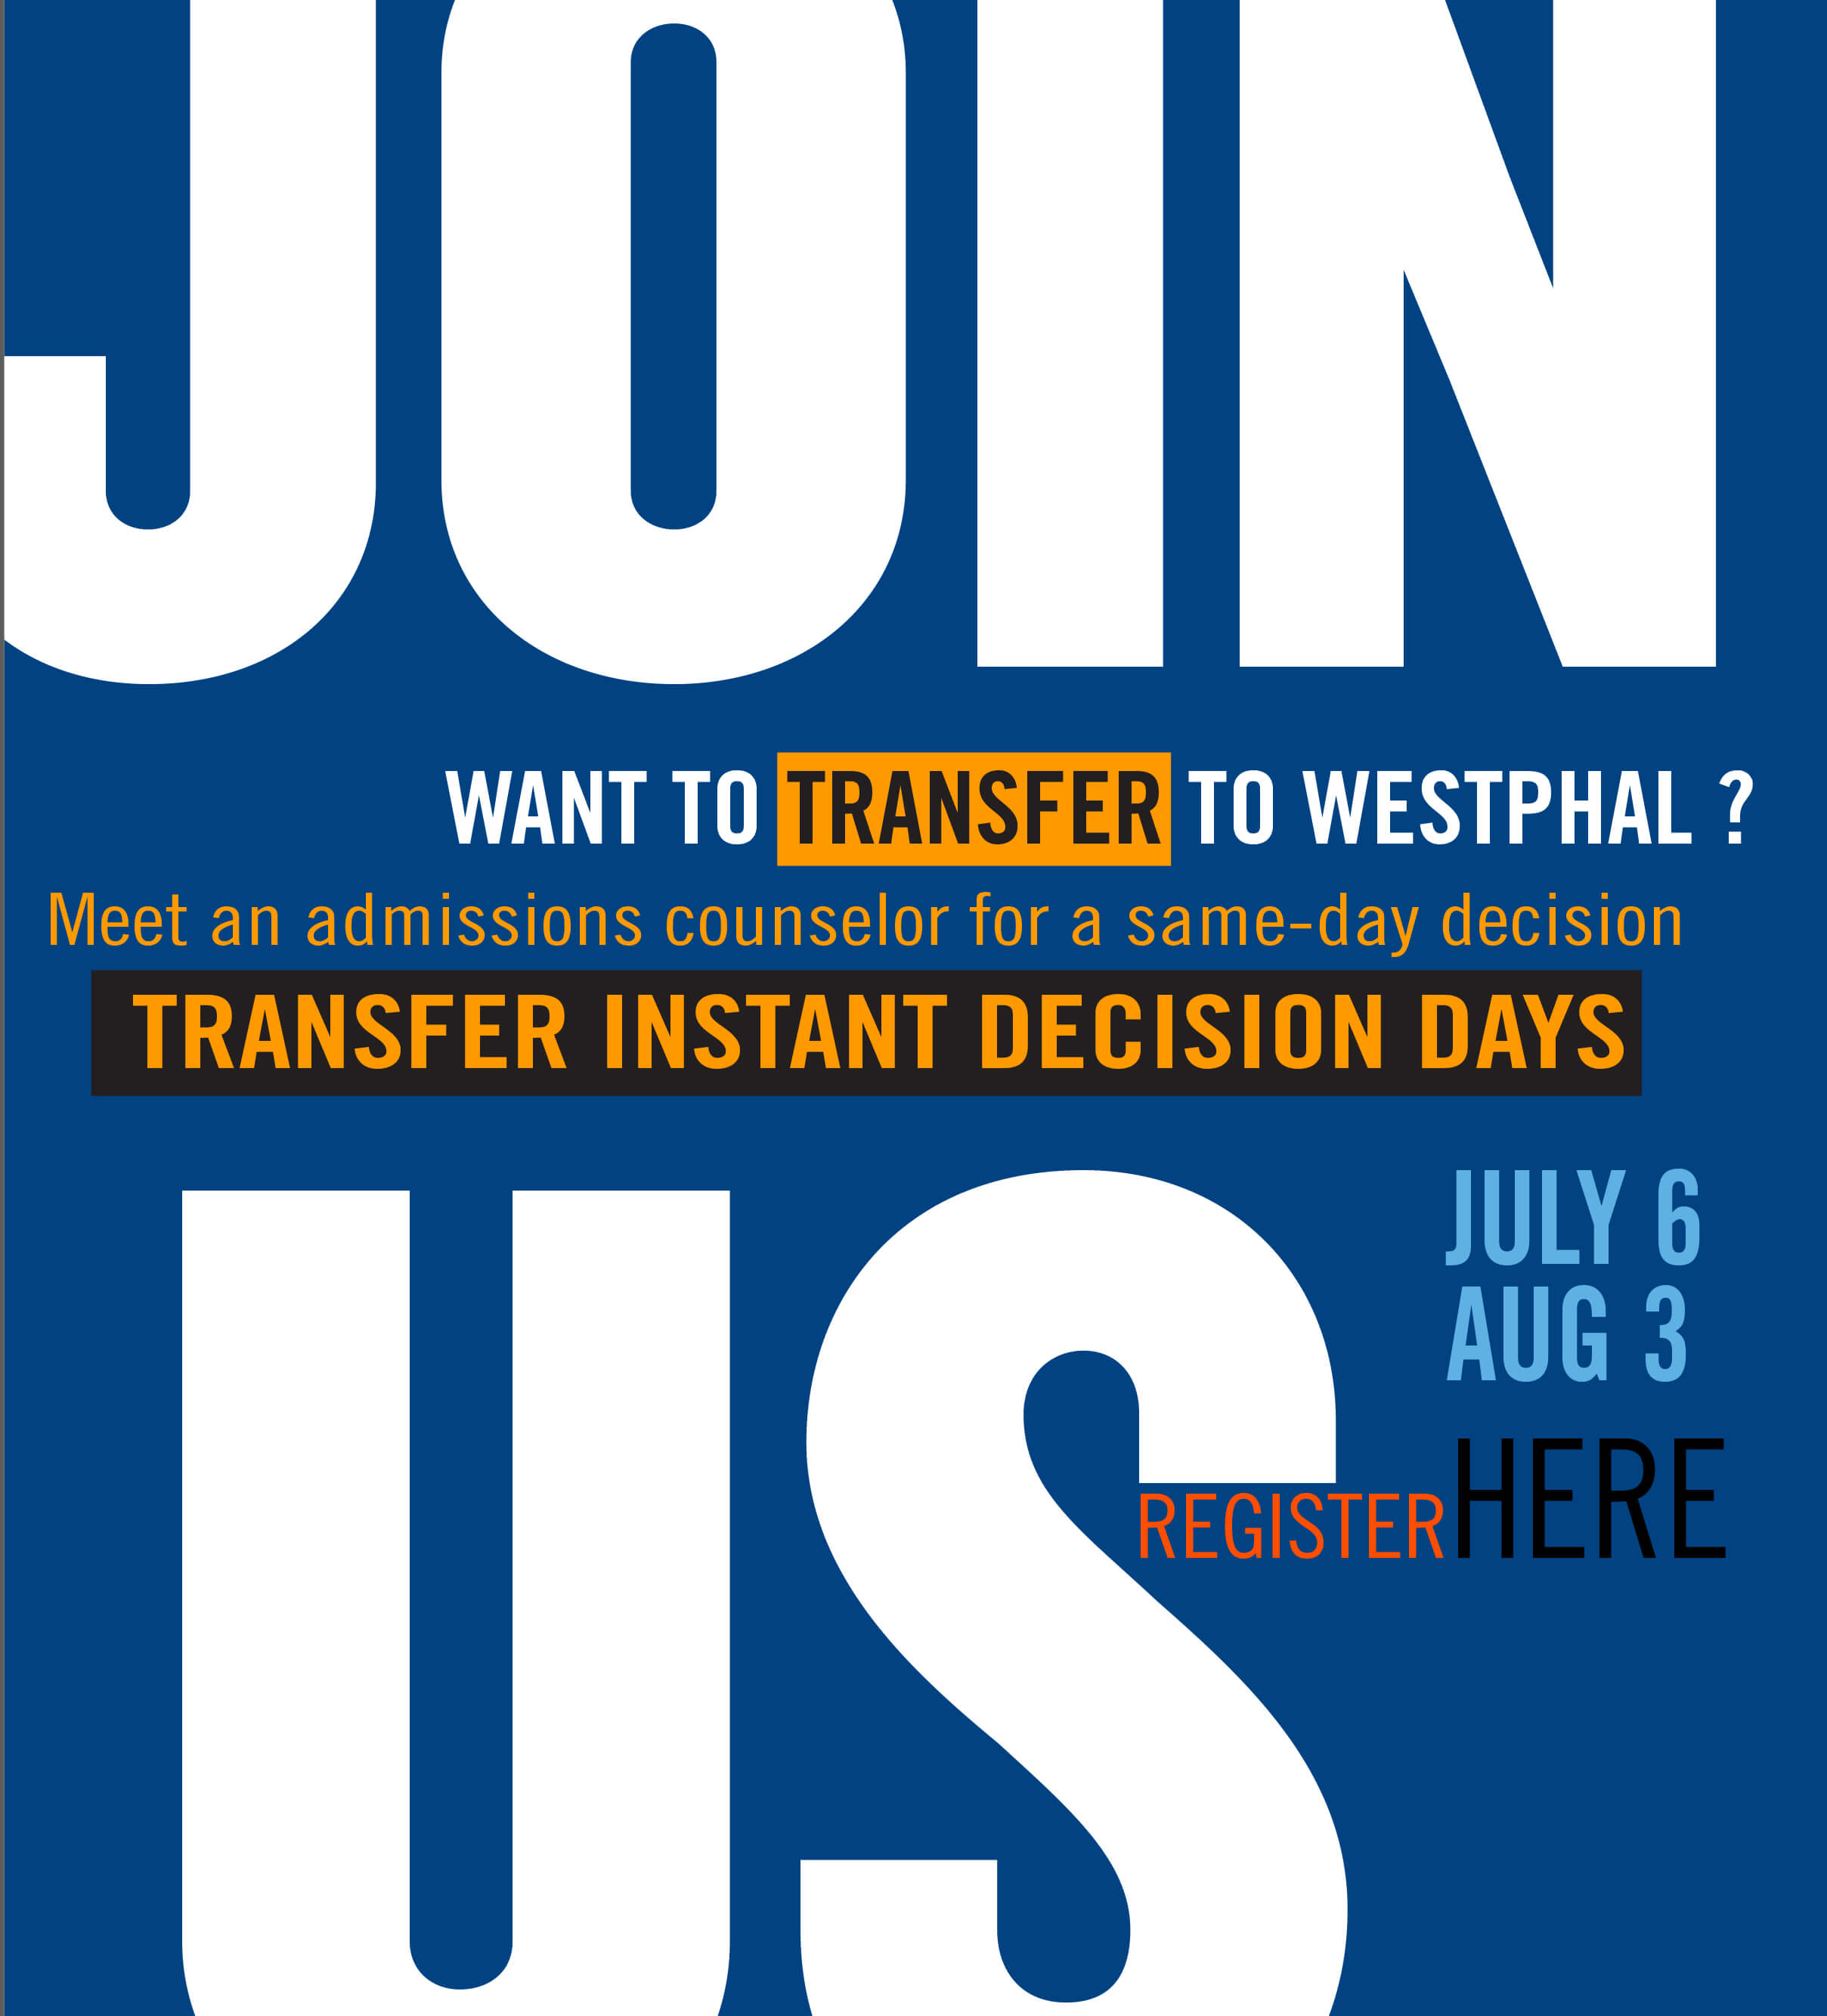 Contact us to transfer to Westphal College